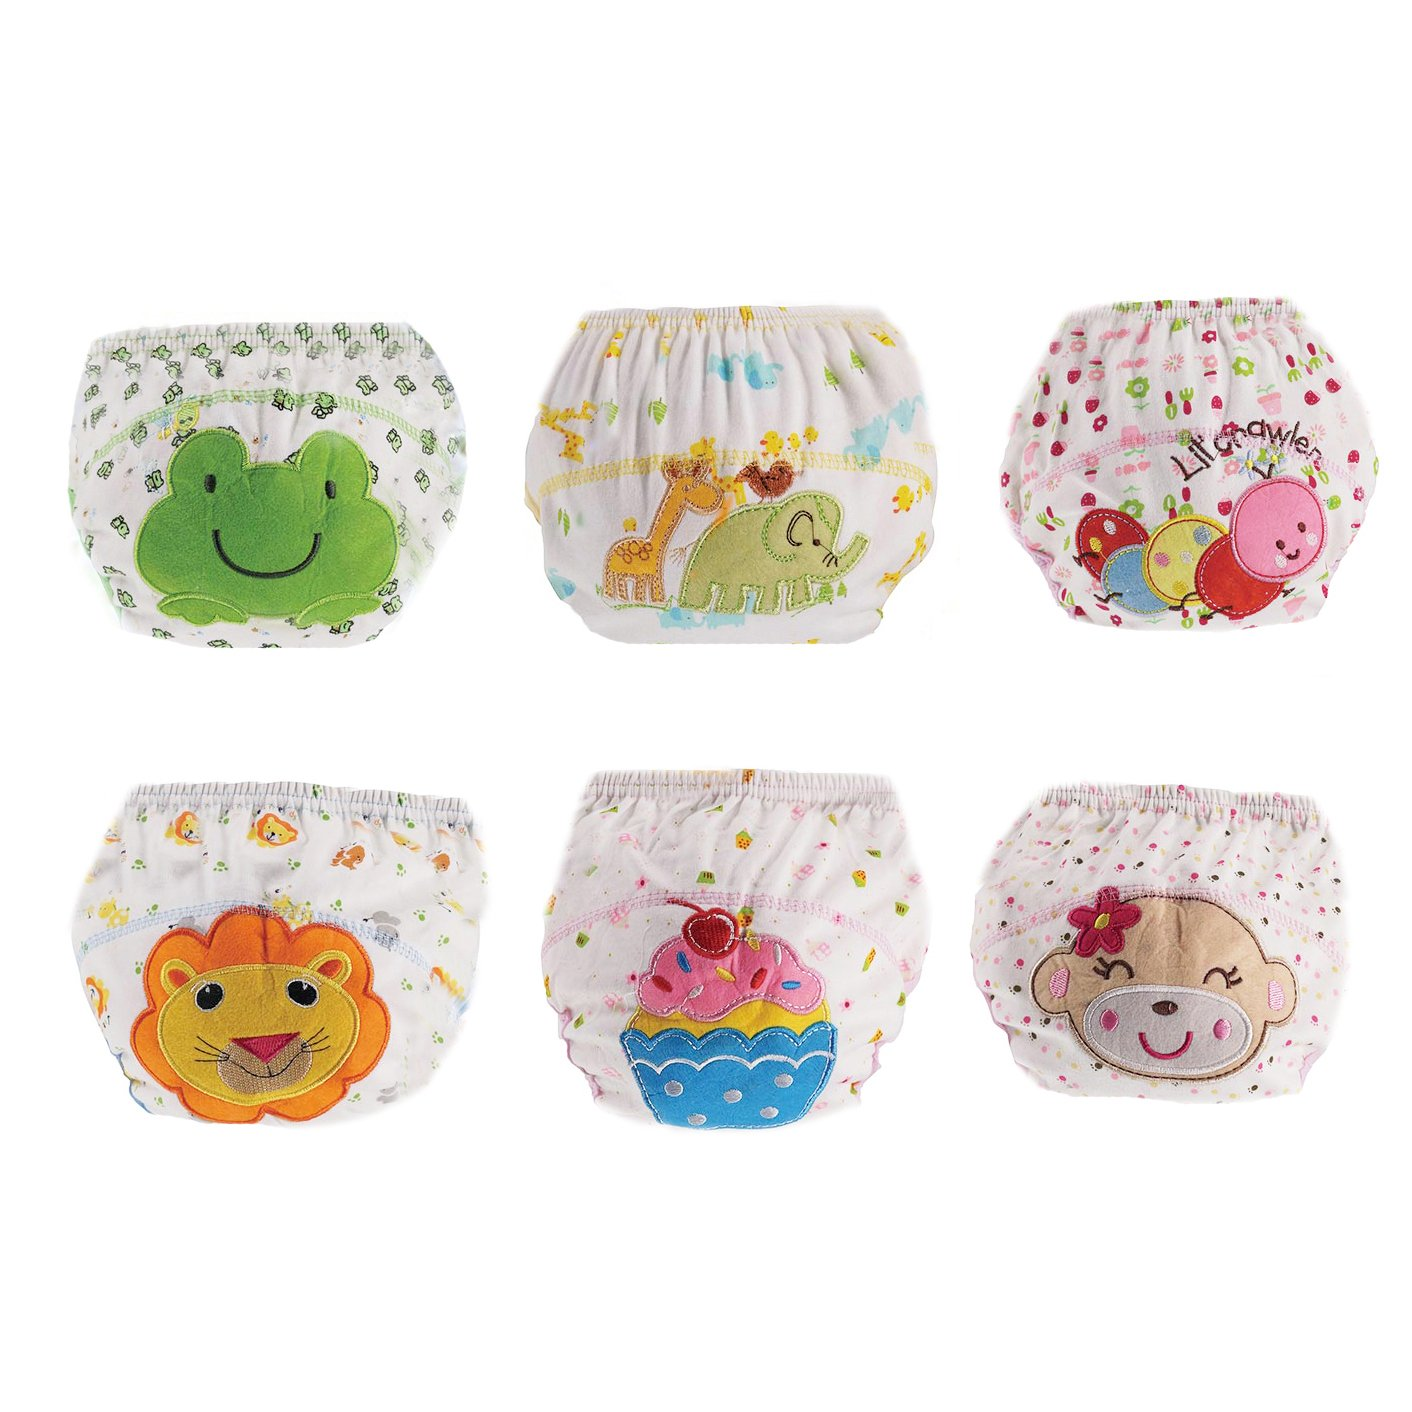 6 Pack Baby Girl Boy Toilet Pee Potty Training Pants Toddler Cotton Washable Diaper Nappy Training Underwear Size L